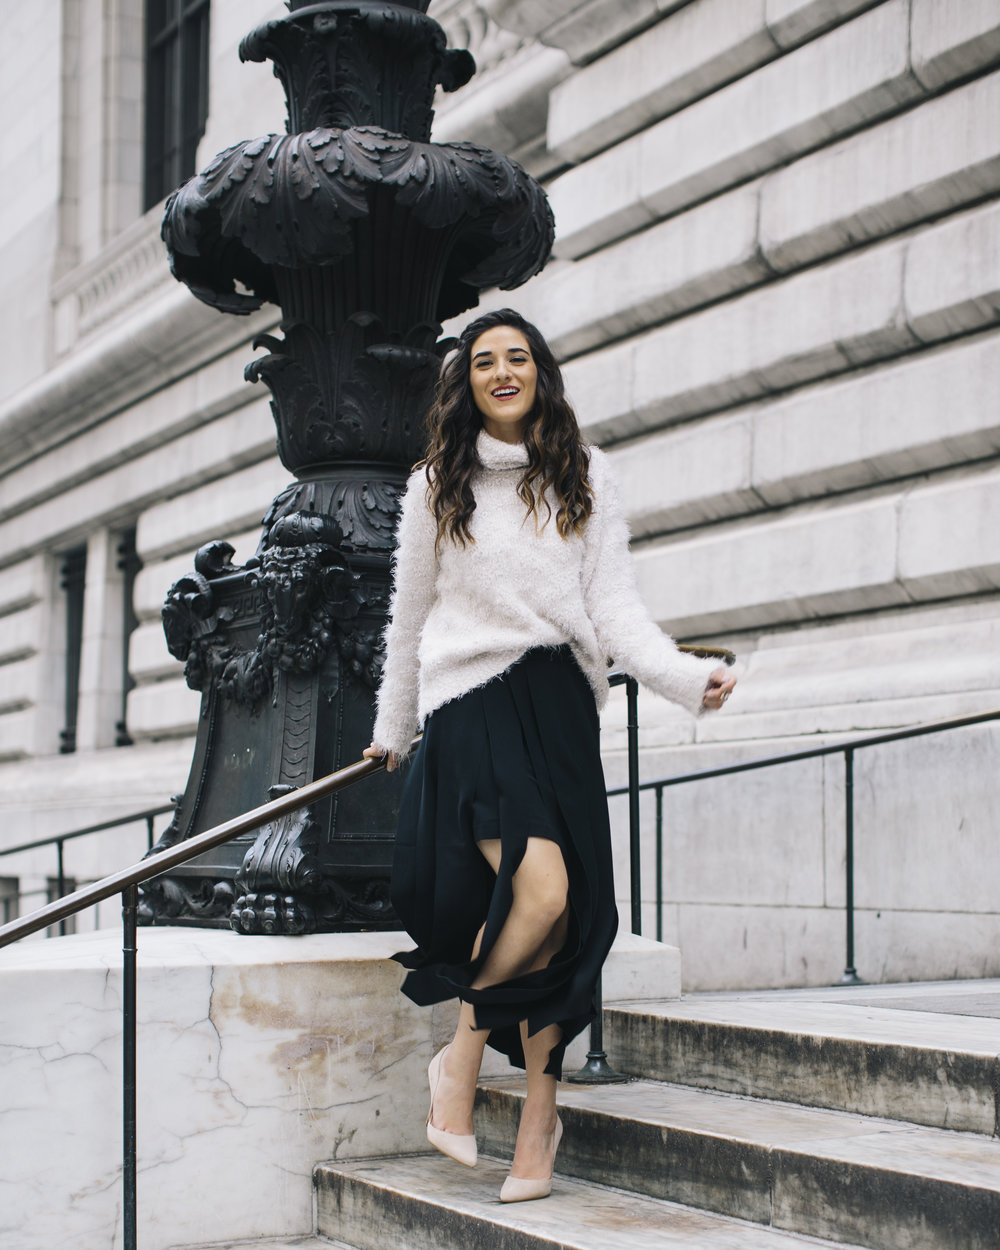 Shopping with Octer Fringe Skirt Louboutins & Love Fashion Blog Esther Santer NYC Street Style Blogger Outfit OOTD Buy Trendy Sweater Cozy Zara Steve Madden Nude Heels Neutral Colors Navy White Winter New York City Photoshoot Hair Beautiful Women Girl.jpg